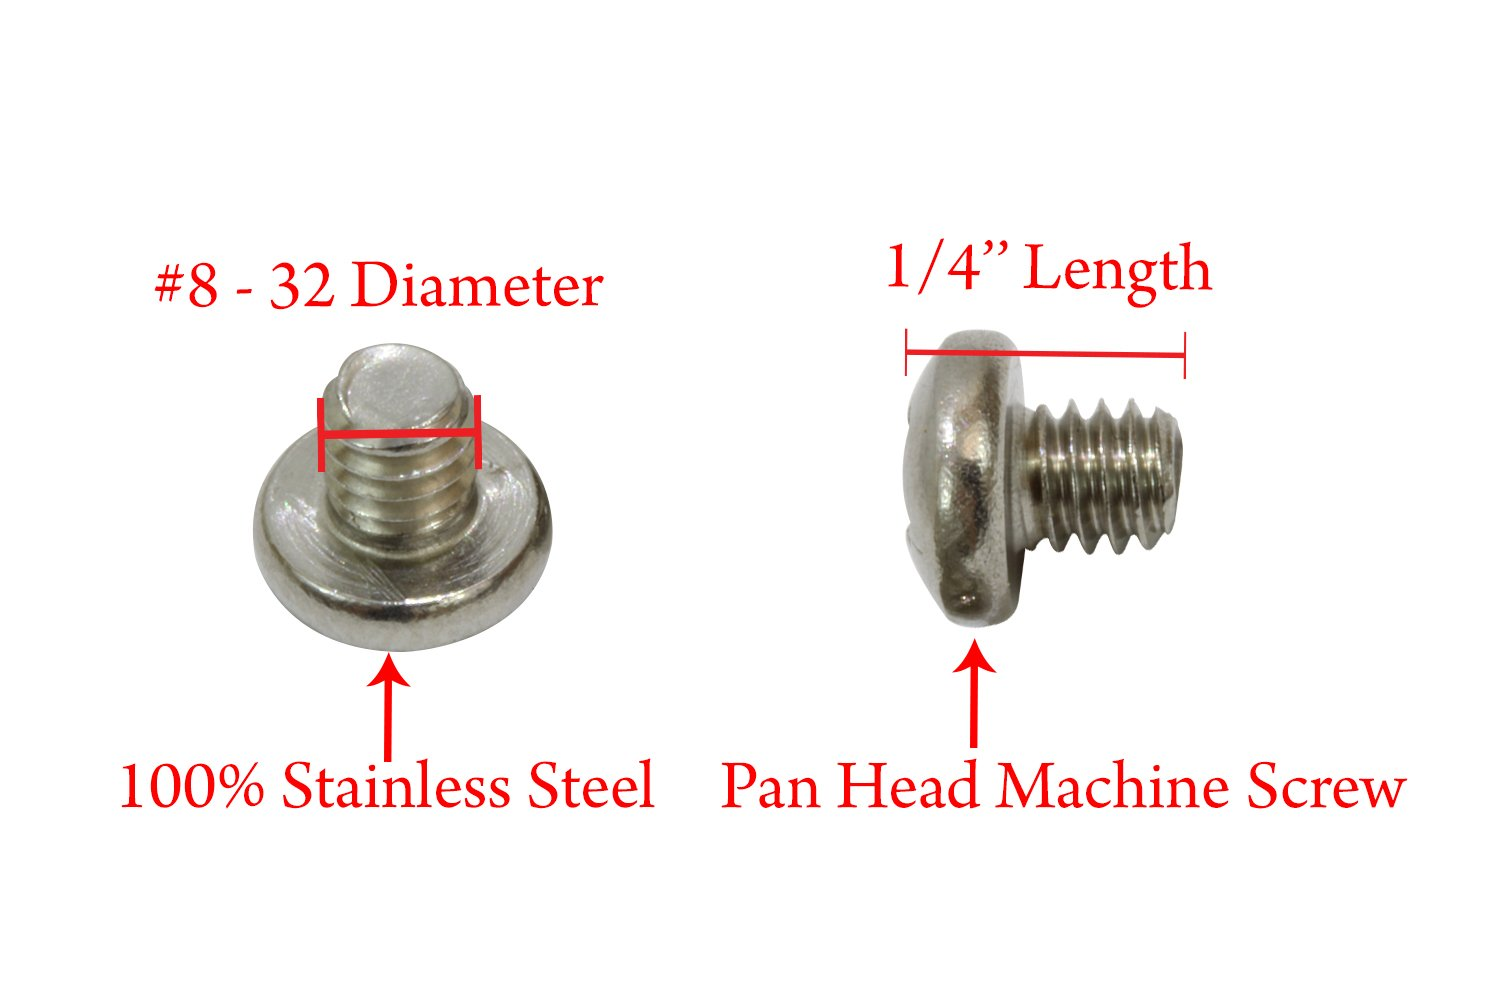 304 18-8 Stainless Steel Screw by Bolt Dropper 100 pc #4-40 X 7//16 Stainless Pan Head Phillips Machine Screw